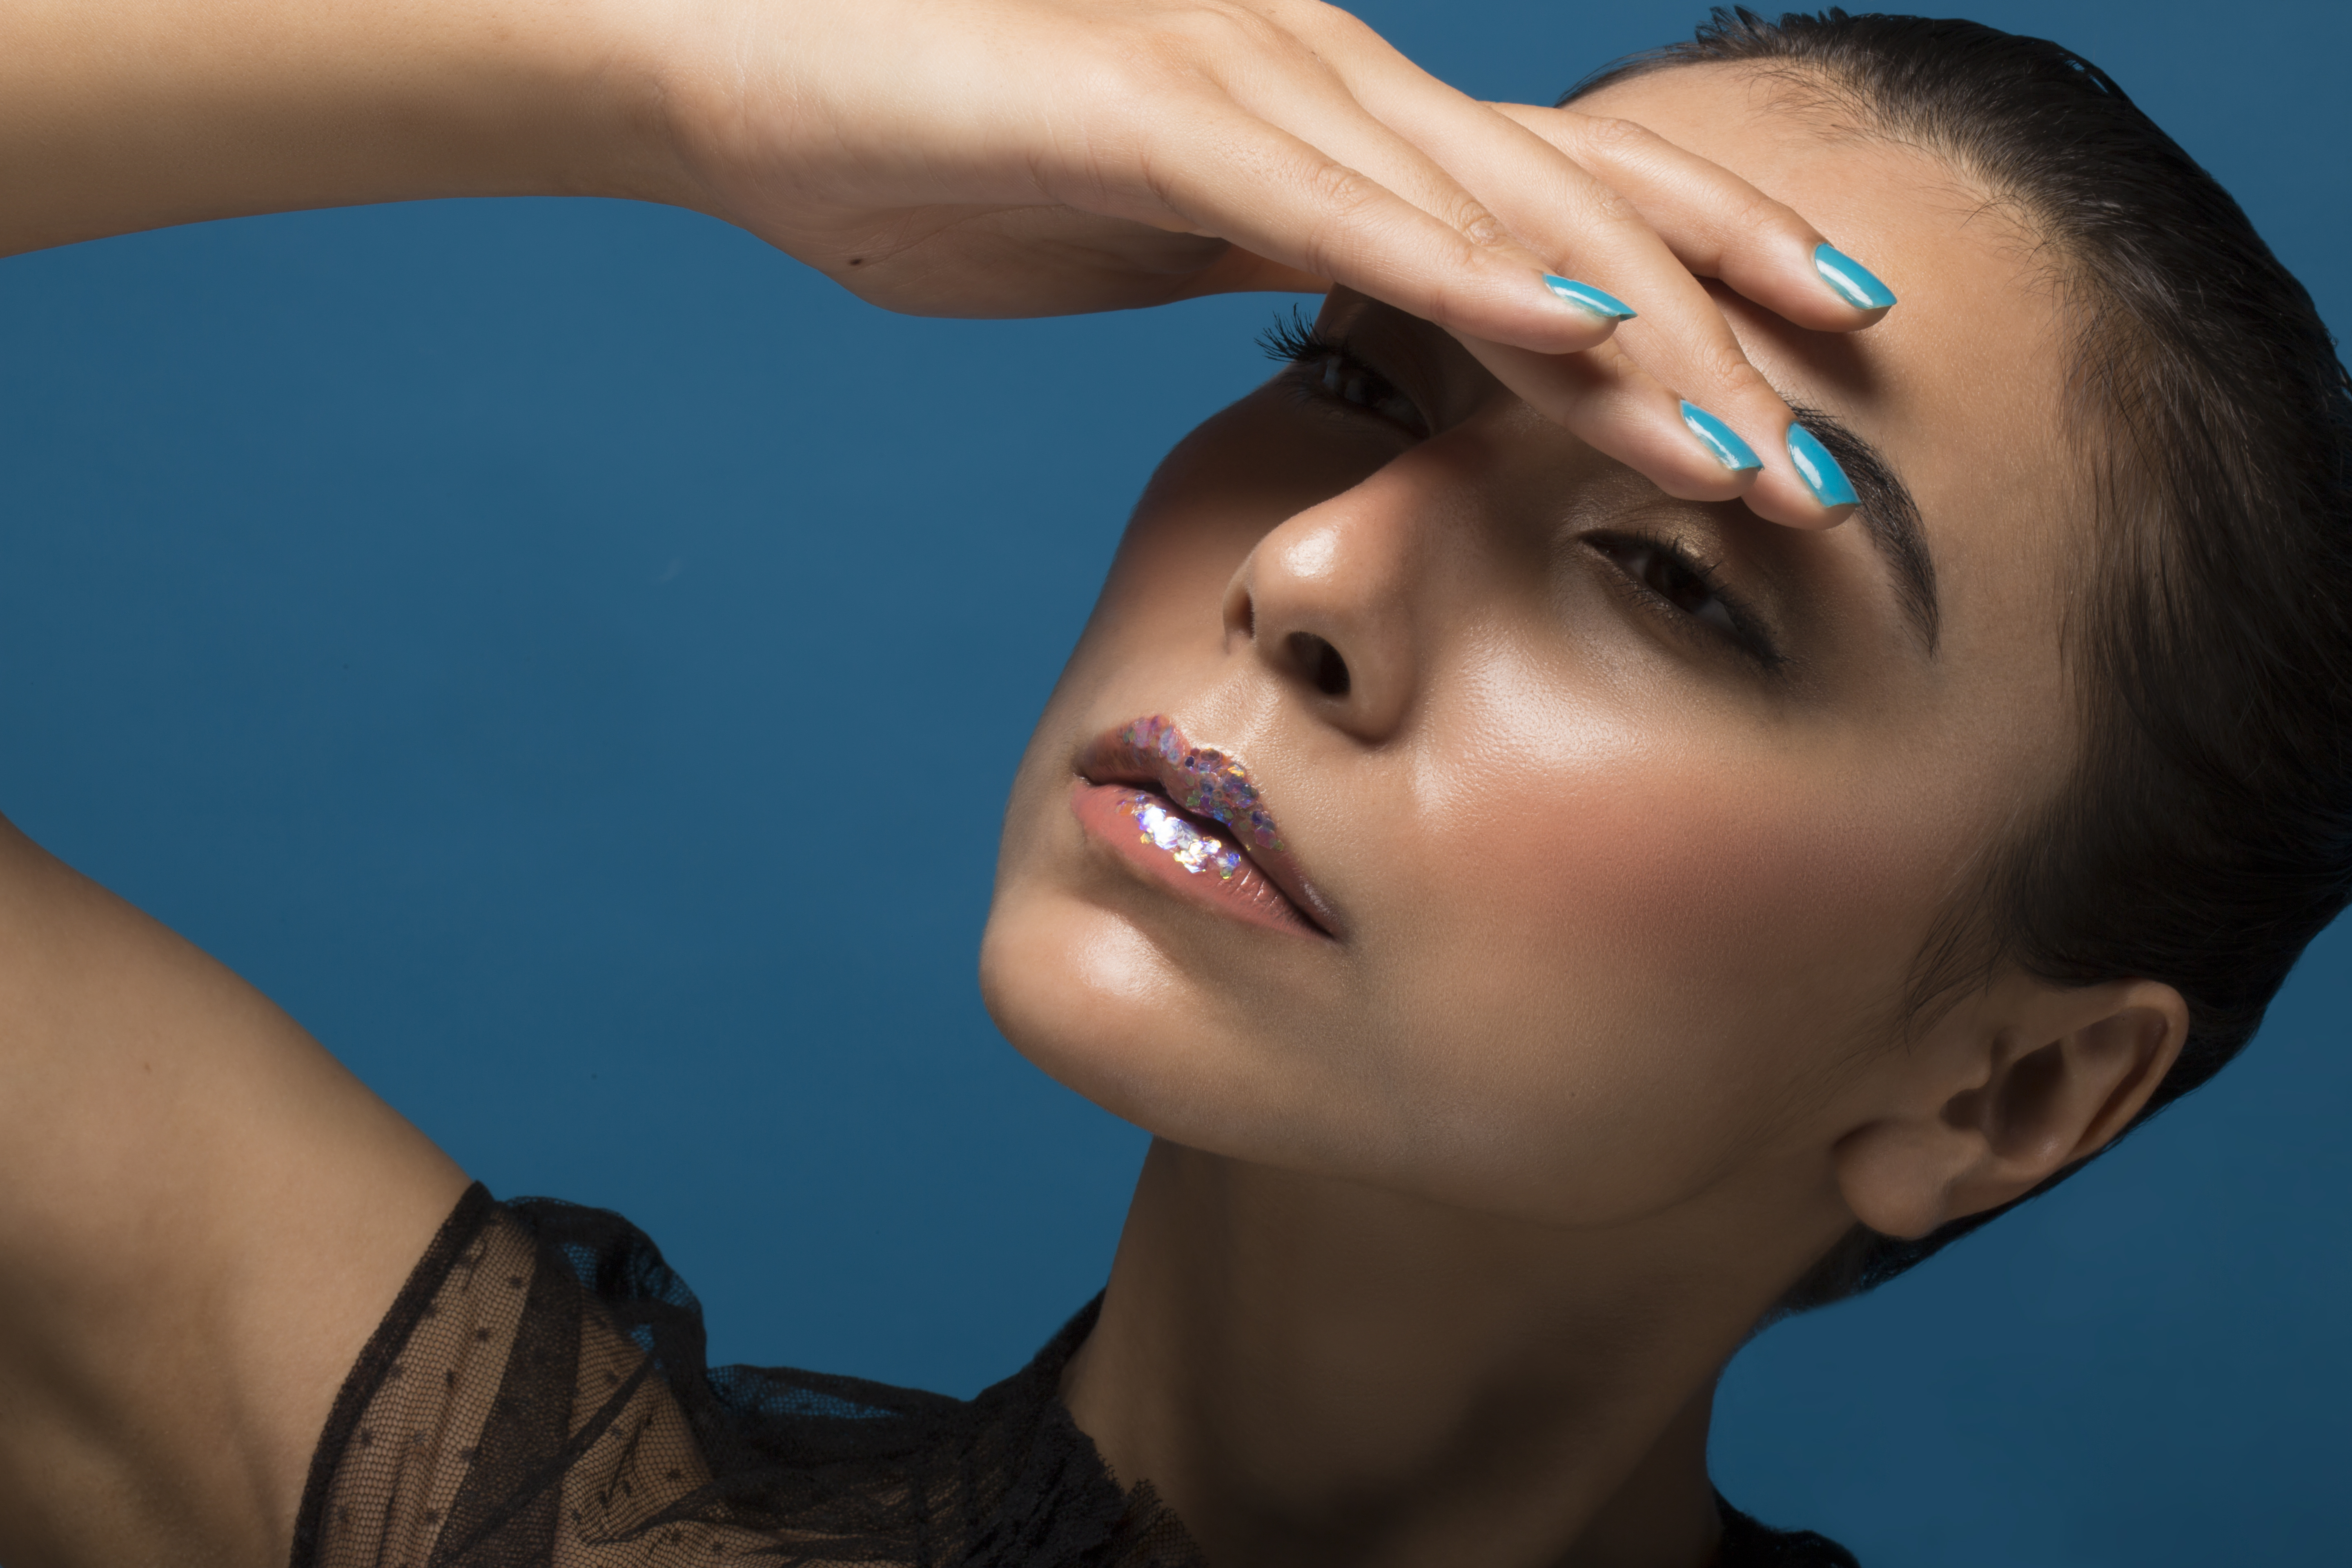 Unfurl- Beauty Editorial published in IMIRAGE magazine.